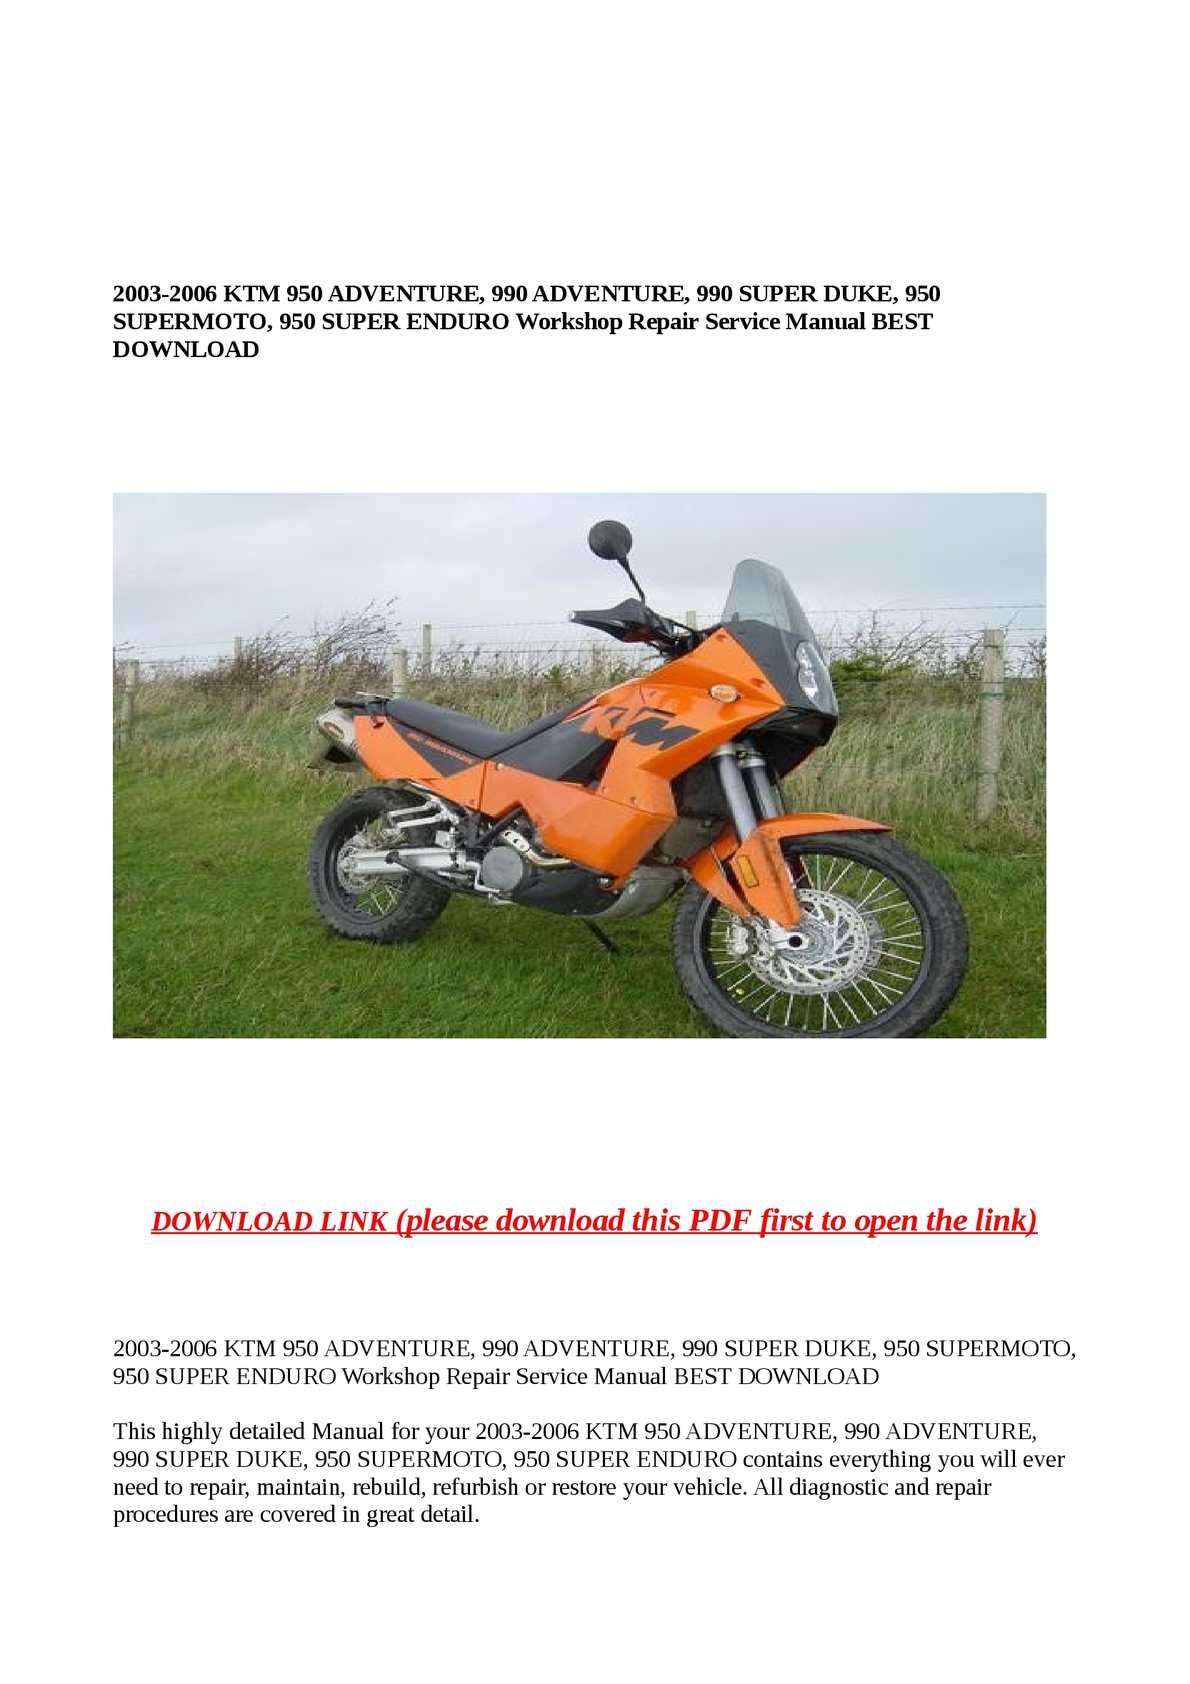 hight resolution of calam o 2003 2006 ktm 950 adventure 990 adventure 990 super duke